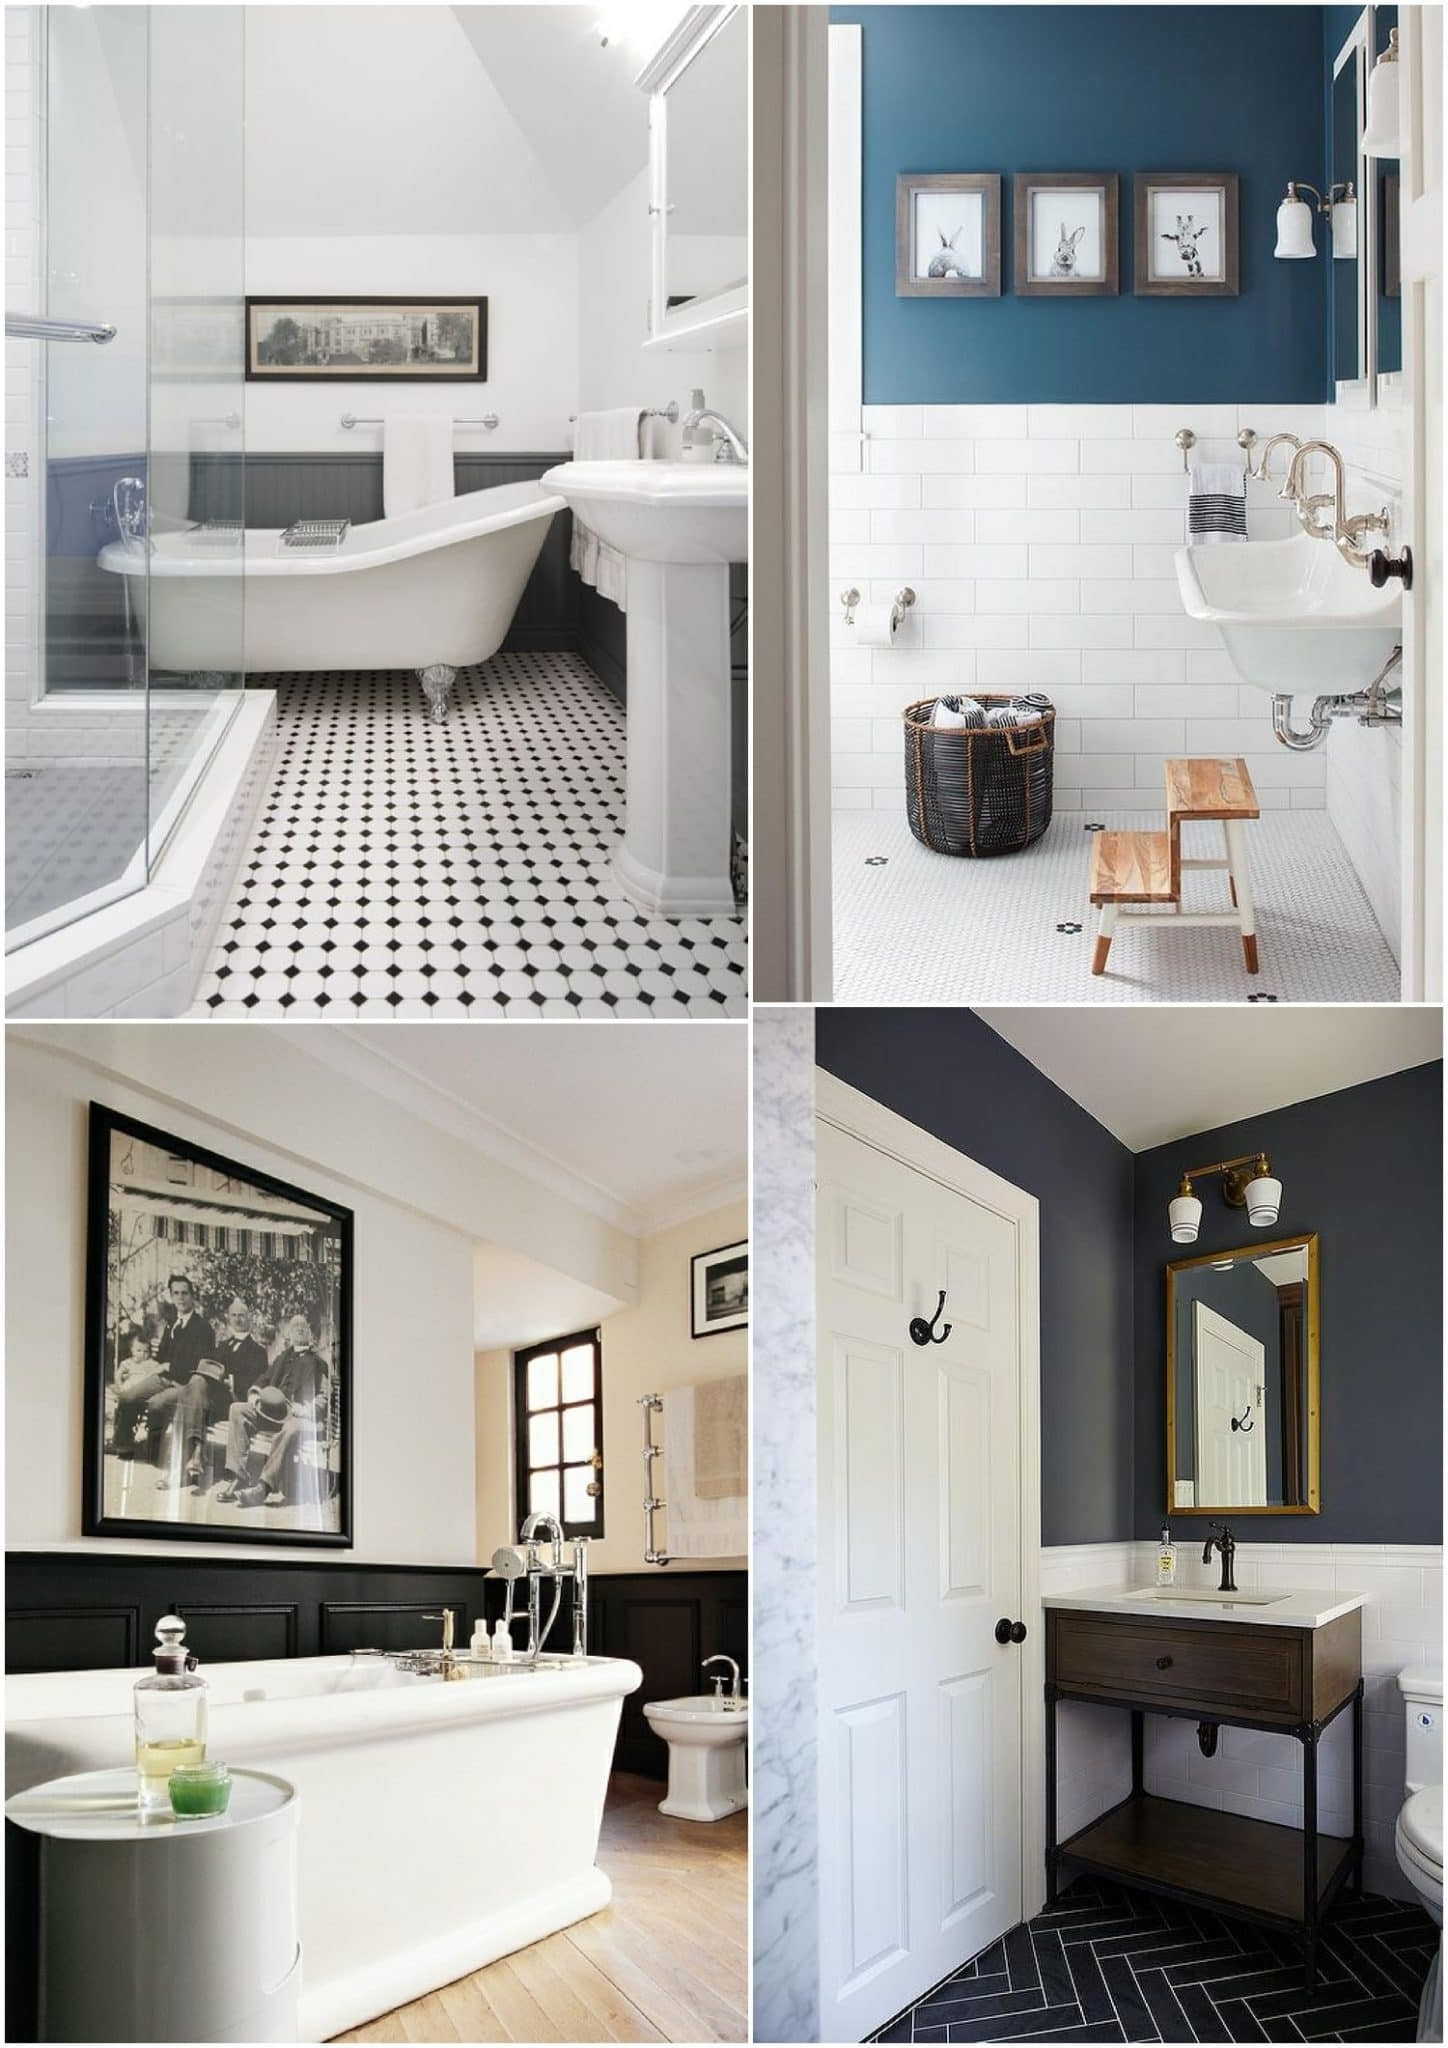 Wall Paneling Ideas For Bathroom Wall Paneling Small Bathroom Panelling